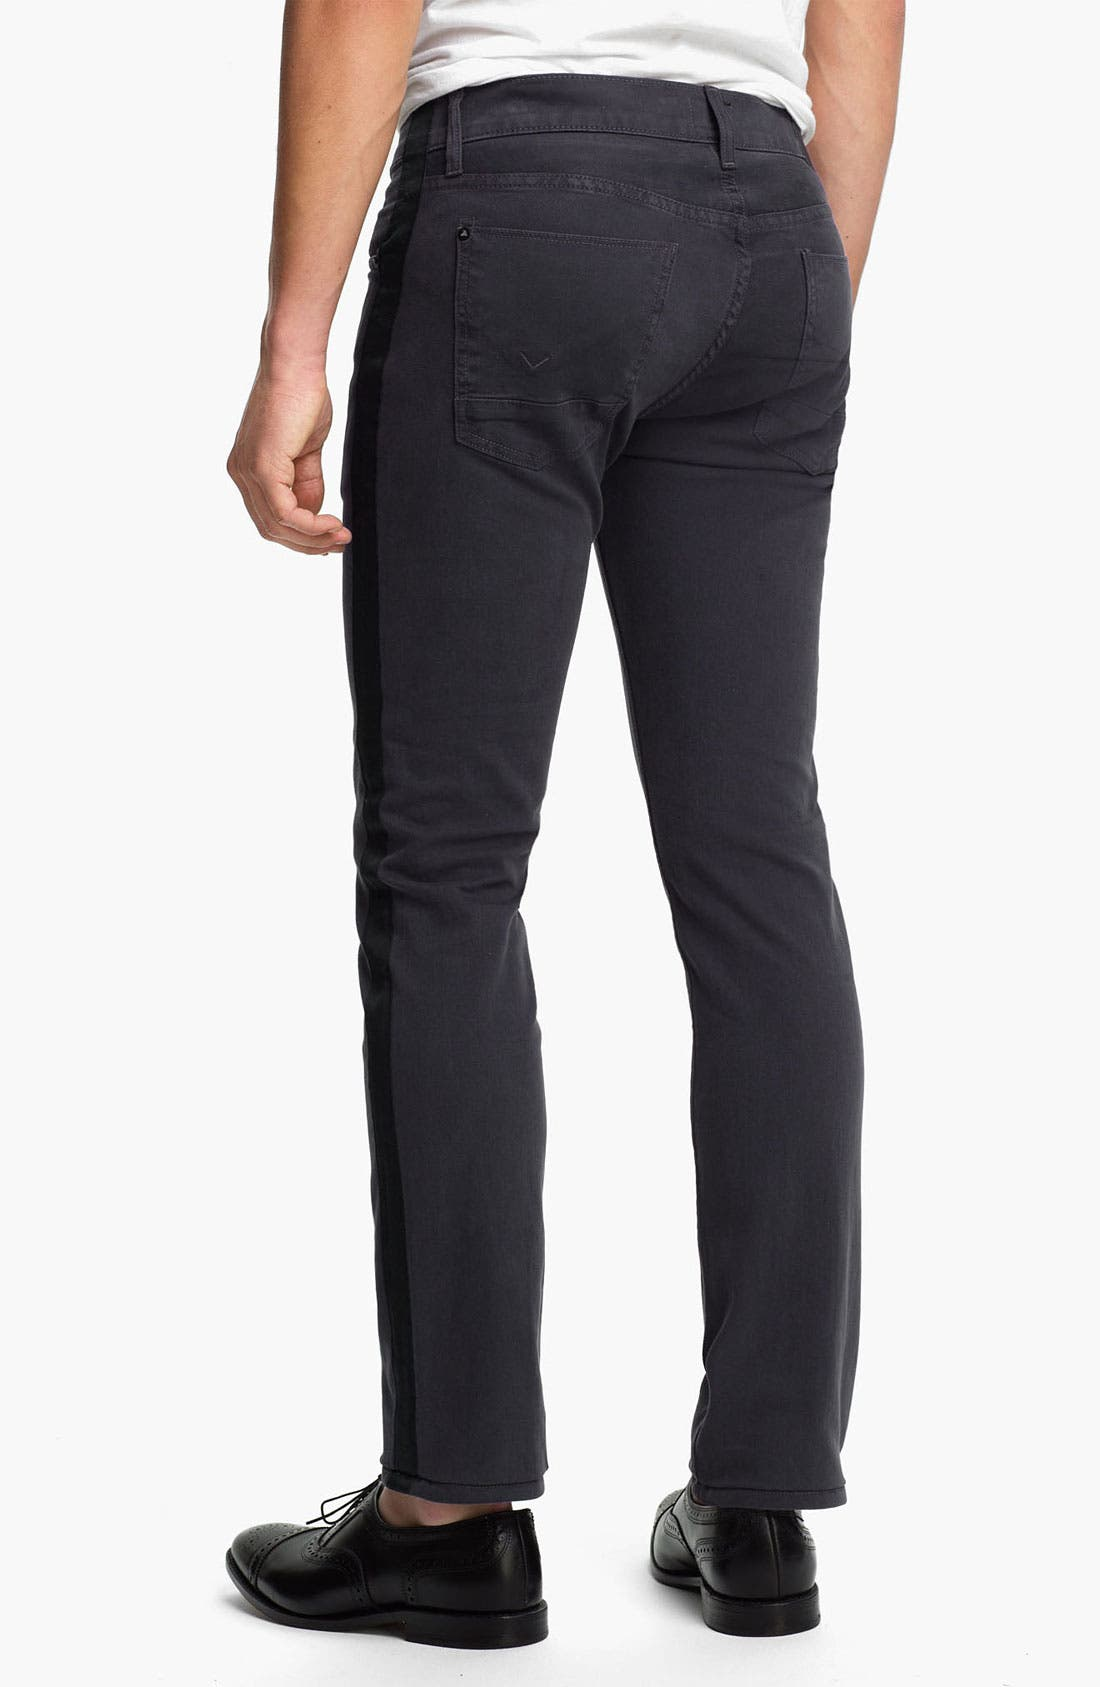 Alternate Image 1 Selected - Hudson Jeans 'Lou Tuxedo' Slim Straight Leg Jeans (Incognito)